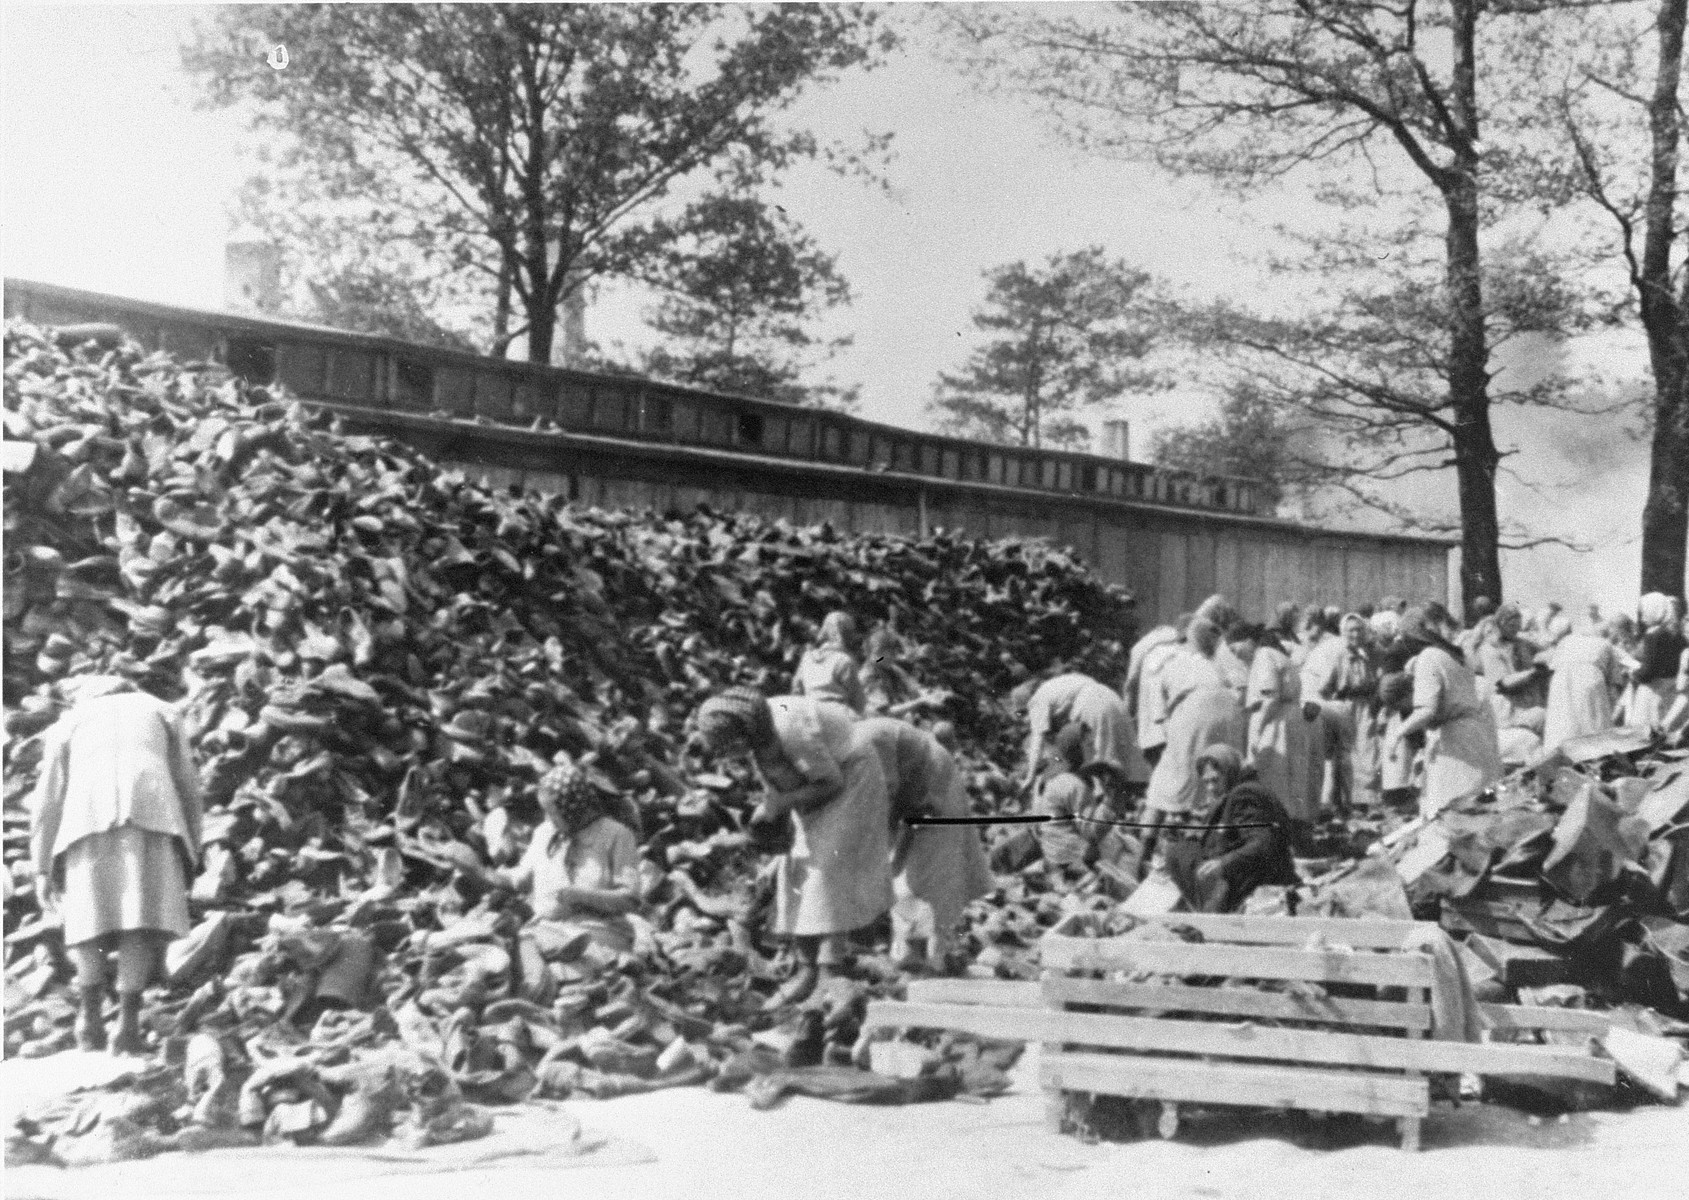 "Auschwitz women inmates sort through a huge pile of shoes from the transport of Hungarian Jews.   Female prisoners in the Aufräumungskommando (order commandos) sort through a pile of shoes confiscated from a transport of Jews from Carpathian Ruthenia at a warehouse in Auschwitz-Birkenau.  The camp prisoners came to refer to the looted property as ""Kanada,"" associating it with the riches symbolized by Kanada.  The members of this commando were almost exclusively Jews.  ""Kanada"" storage facilities occupied several dozen barracks and other buildings around the camp.  The looted property was funneled from Auschwitz through an extensive distribution network that served many individuals and various economic branches of the Third Reich."